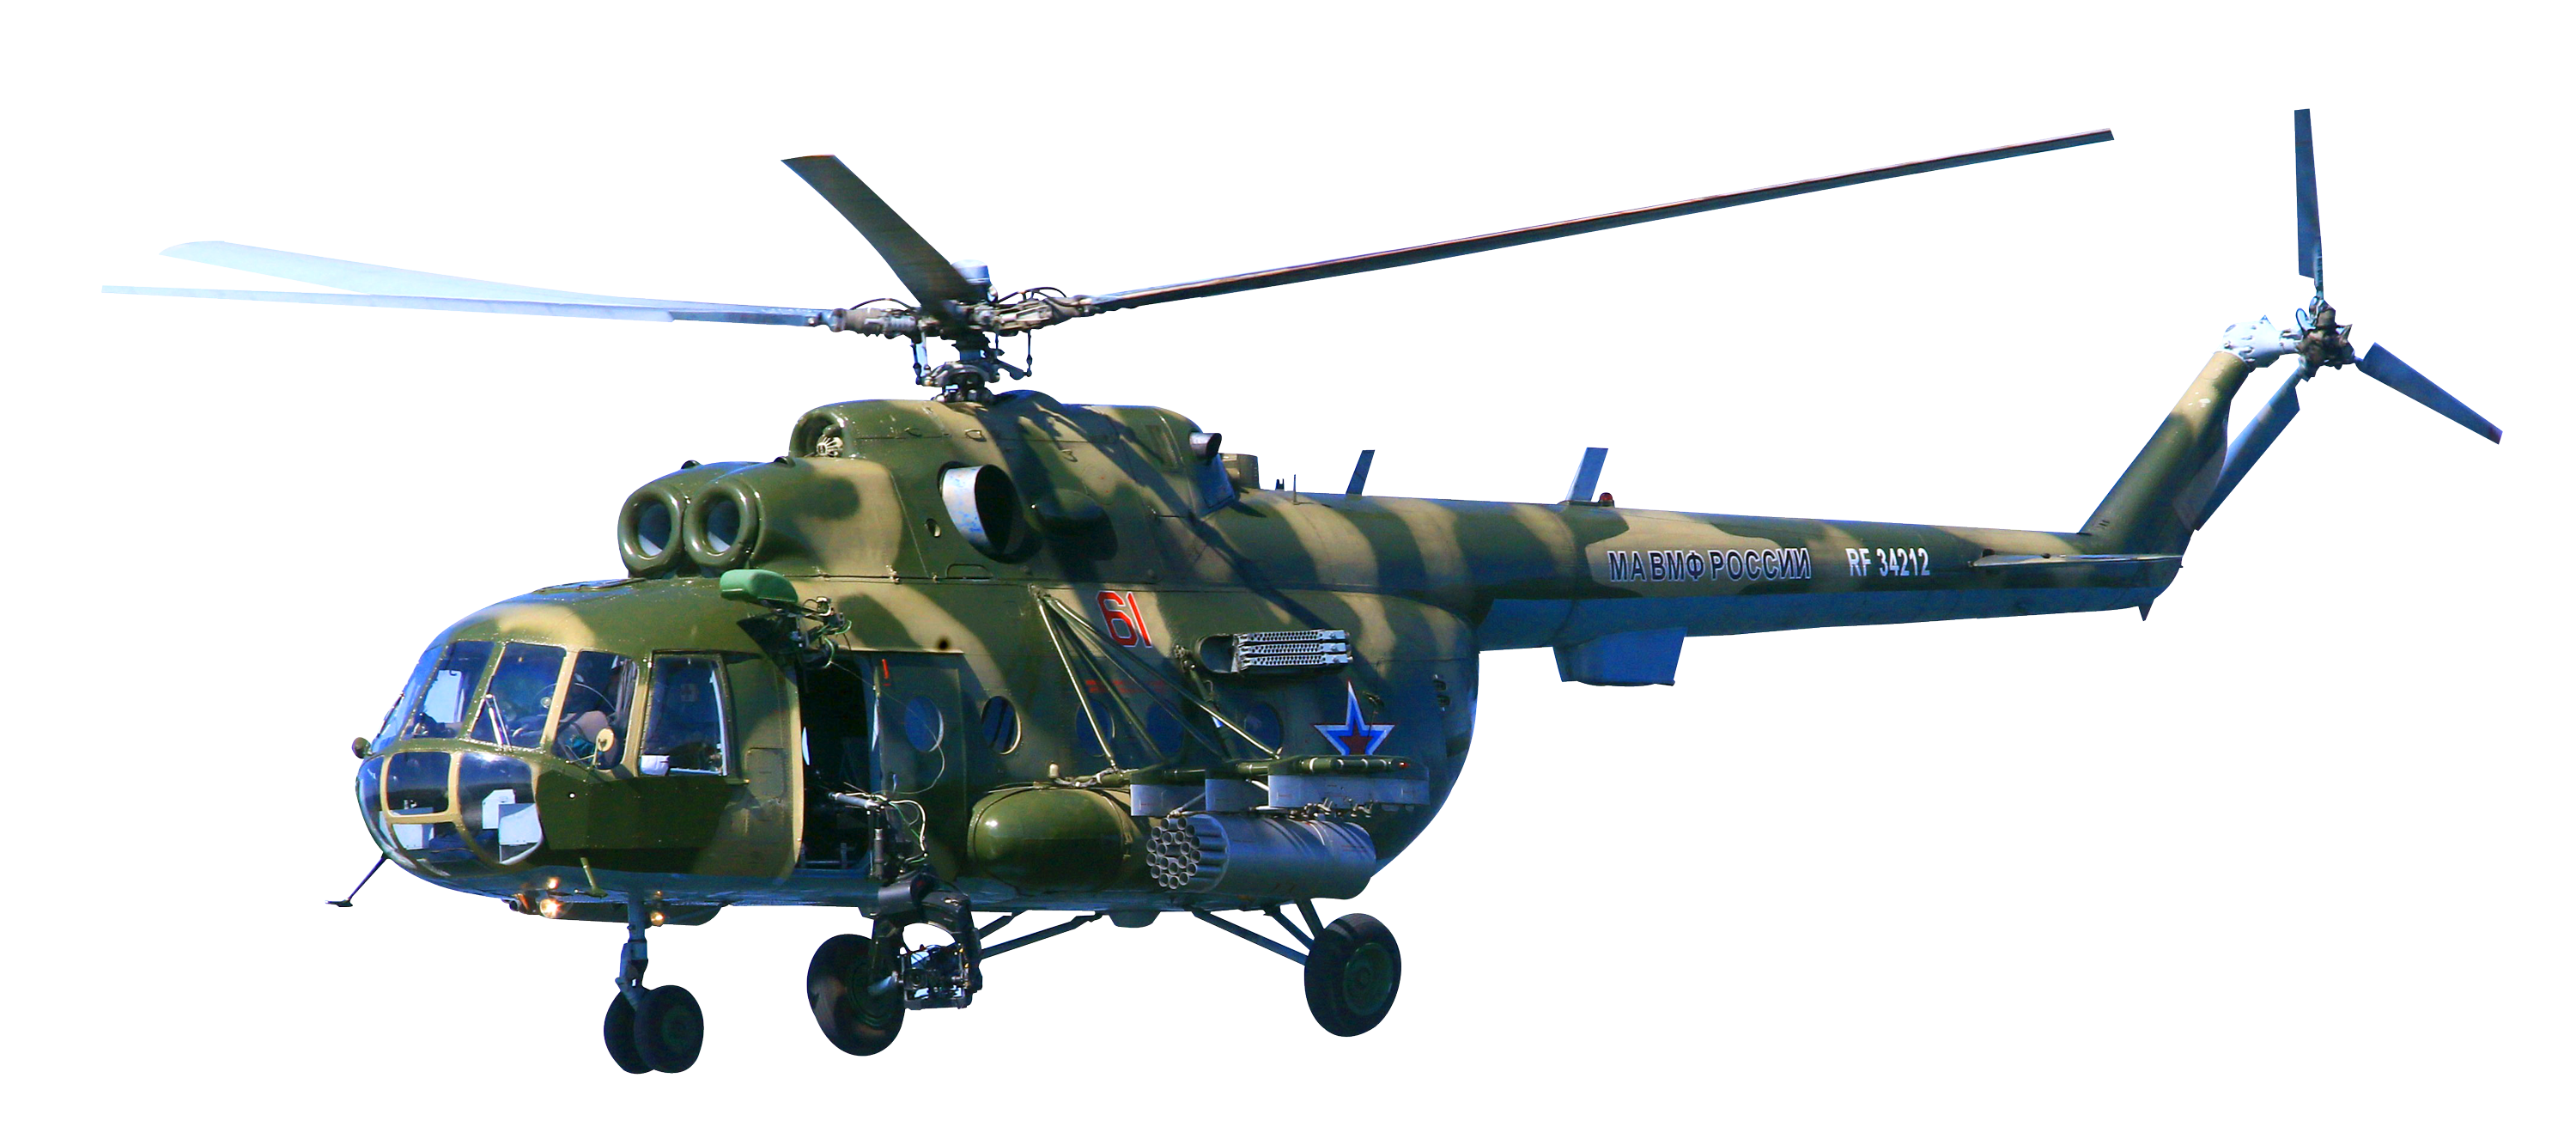 Military Helicopter Png Image Military Helicopter Helicopter Helicopter Pilot Training